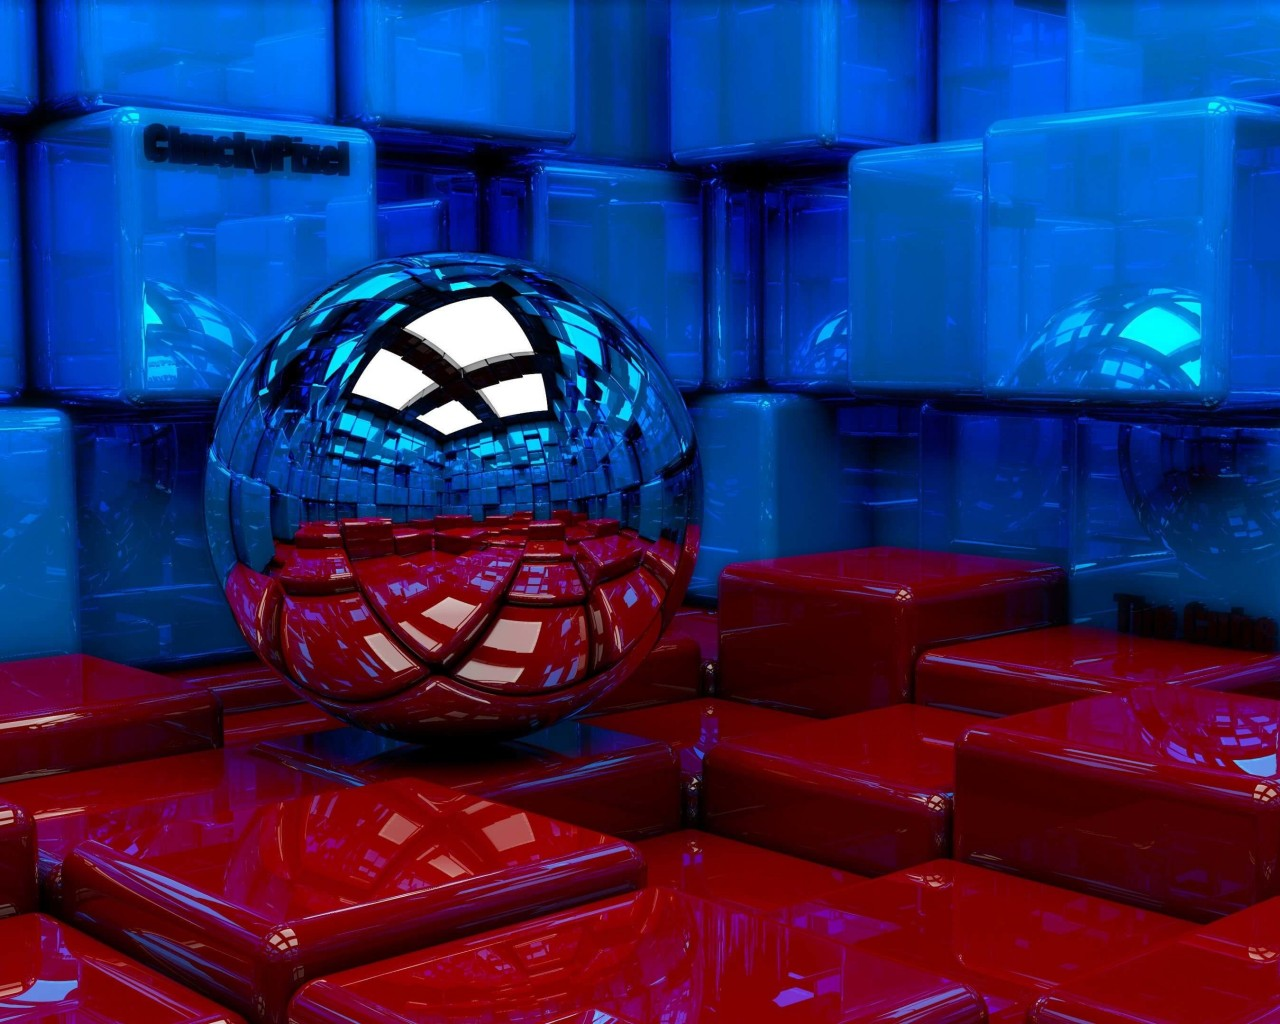 Metallic Sphere Reflecting The Cube Room HD wallpaper for ...